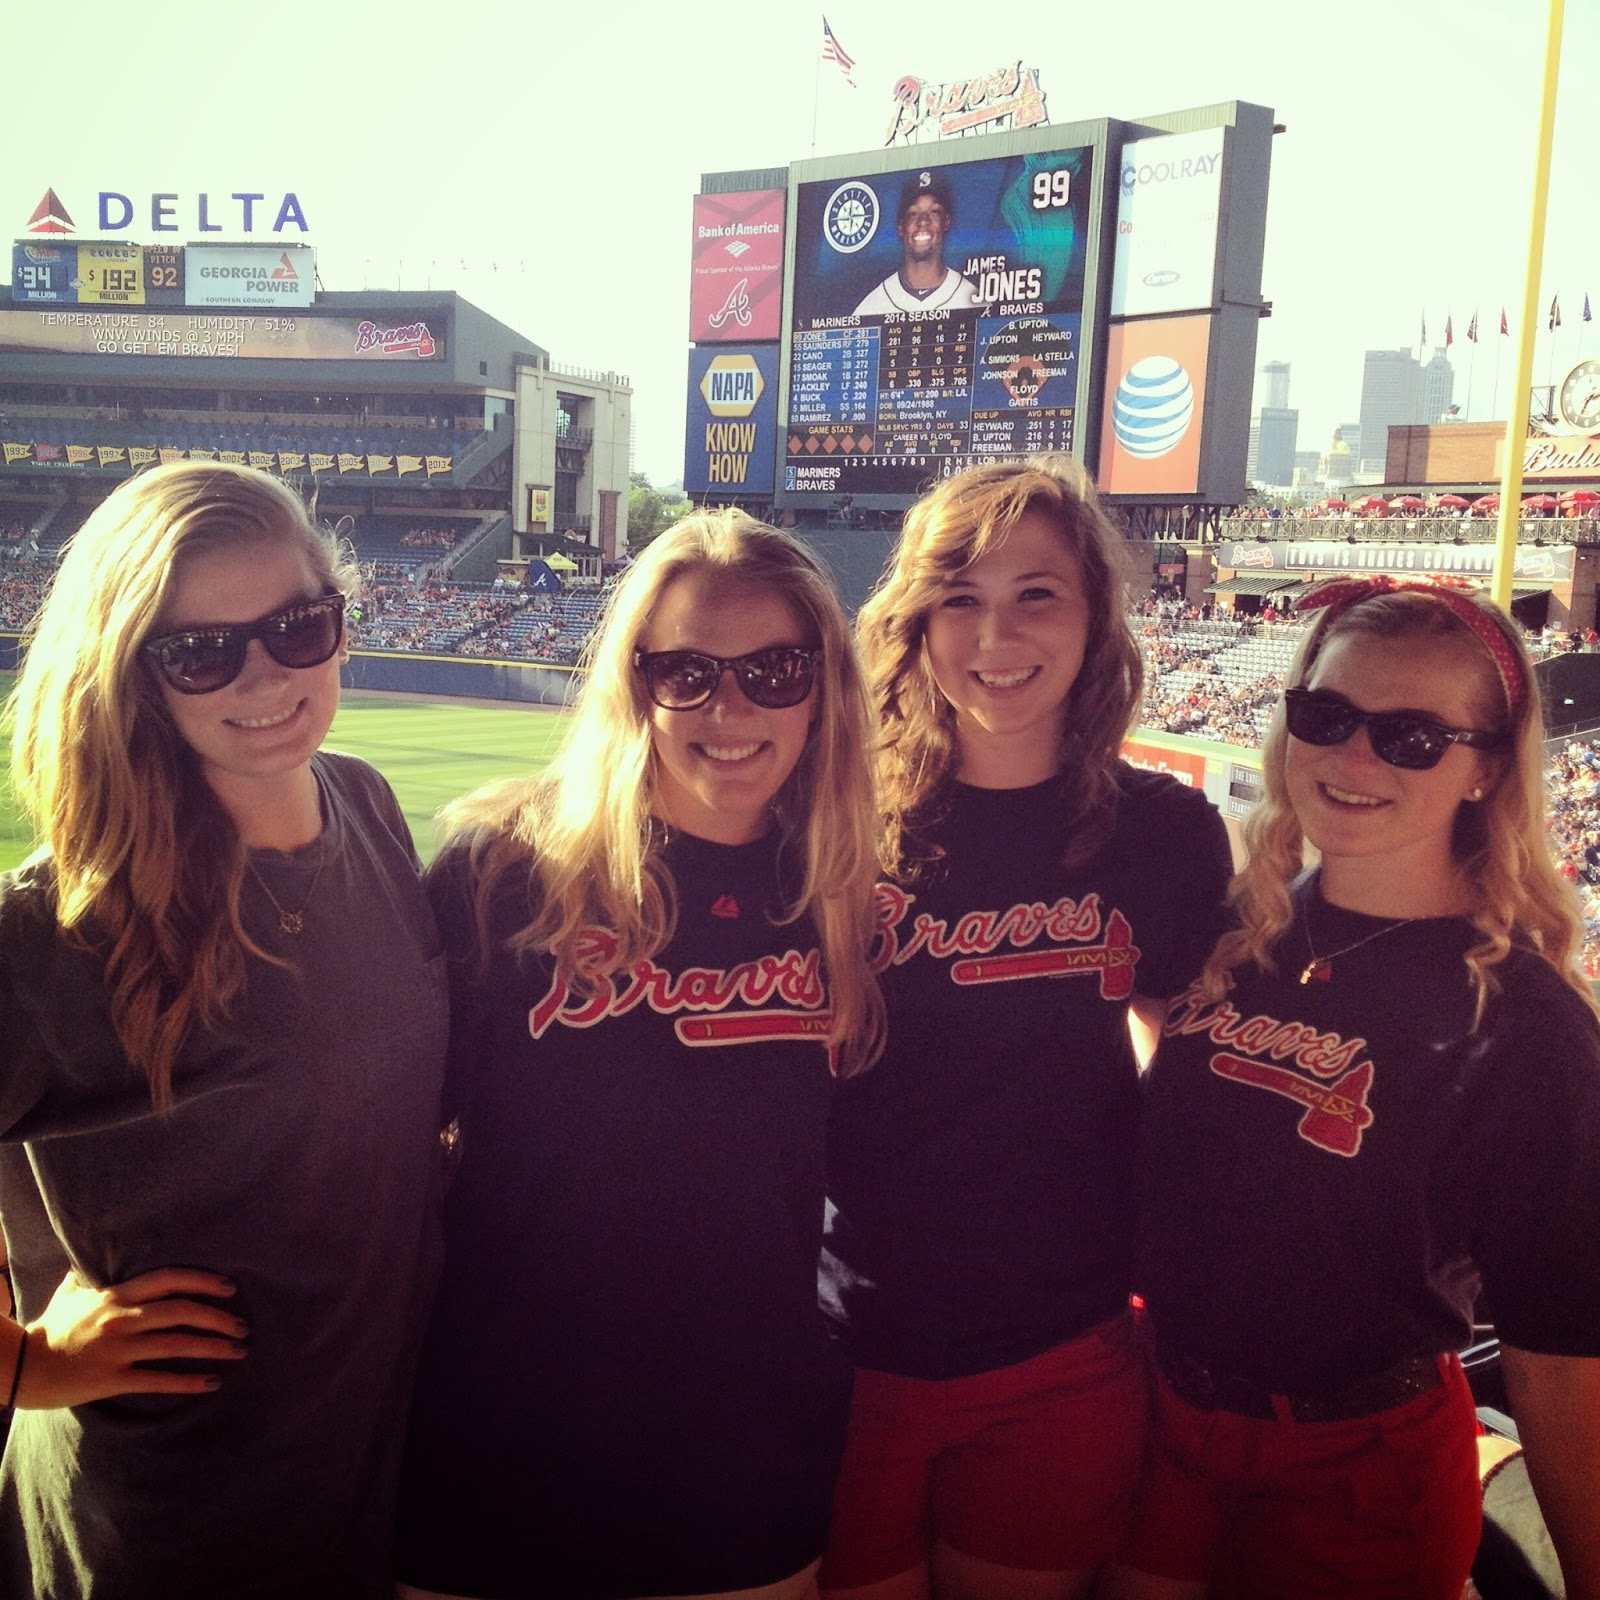 Braves girls